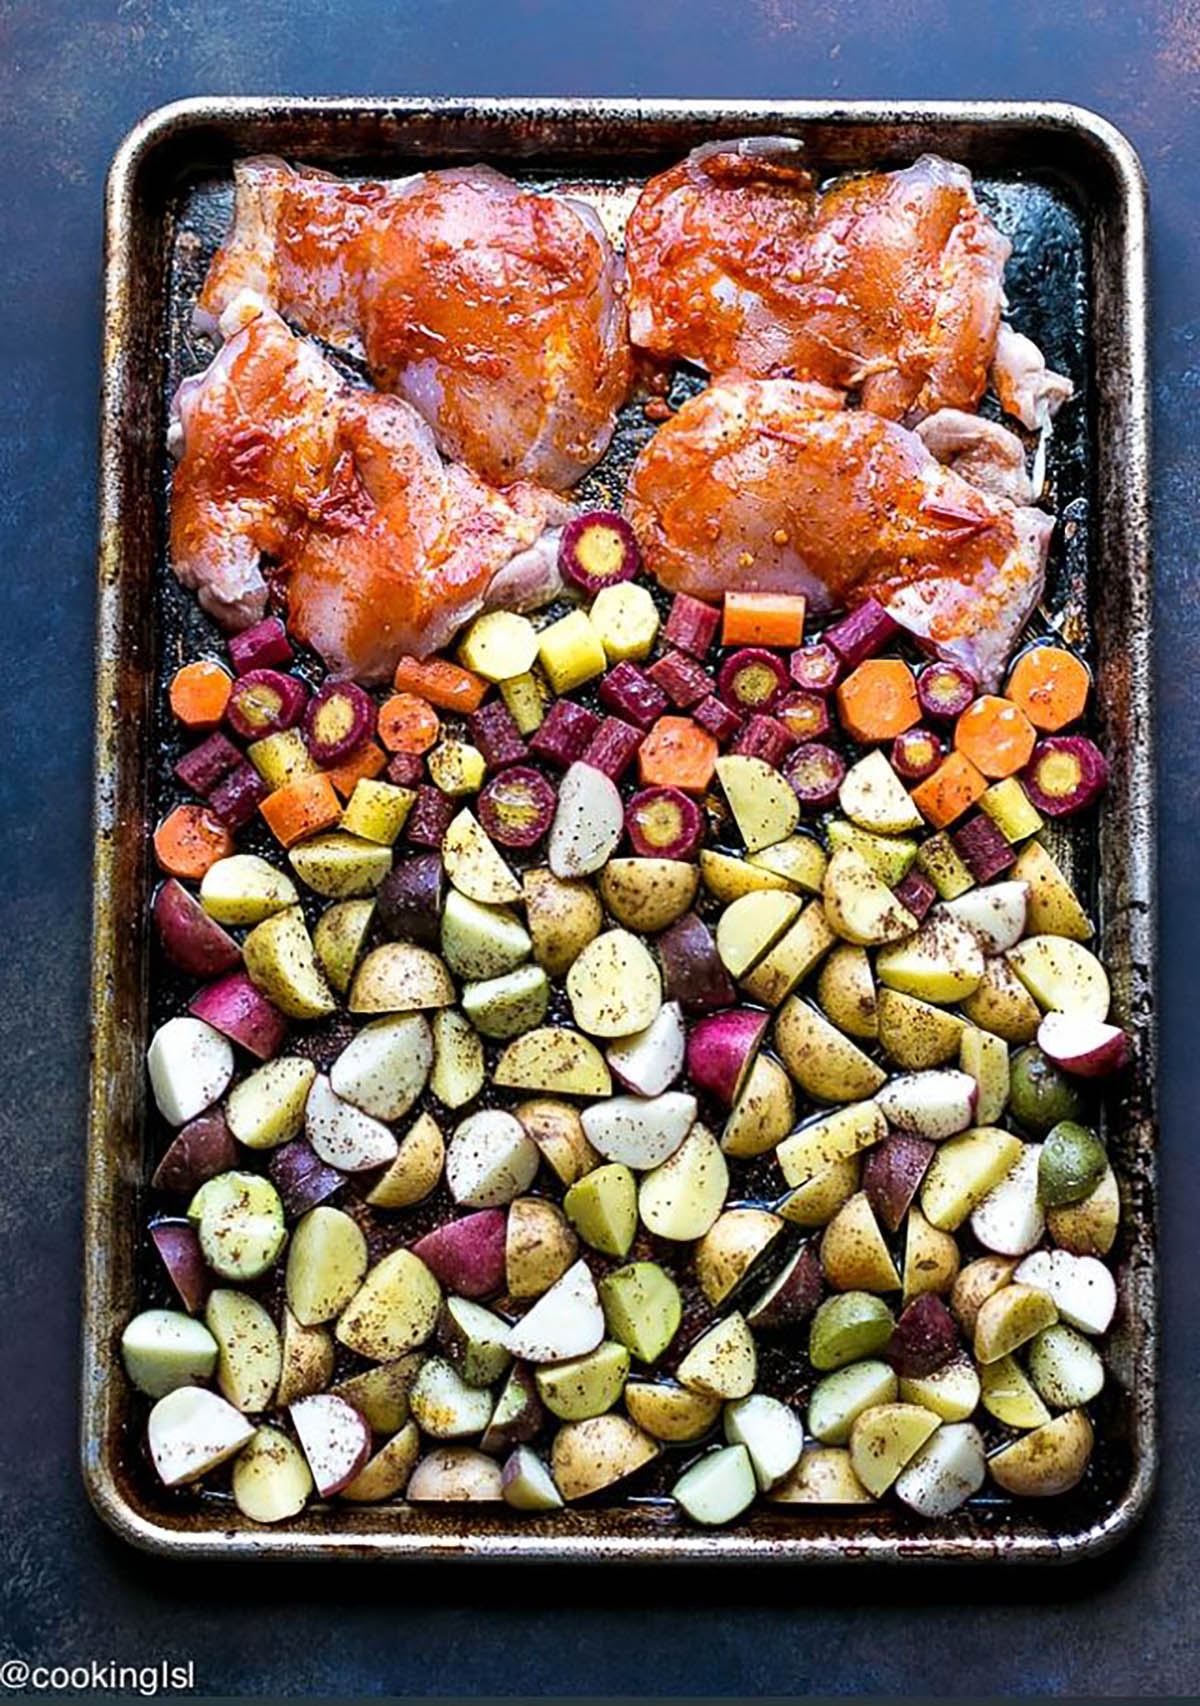 Sheet Pan Harissa Chicken and Vegetables in a baking pan